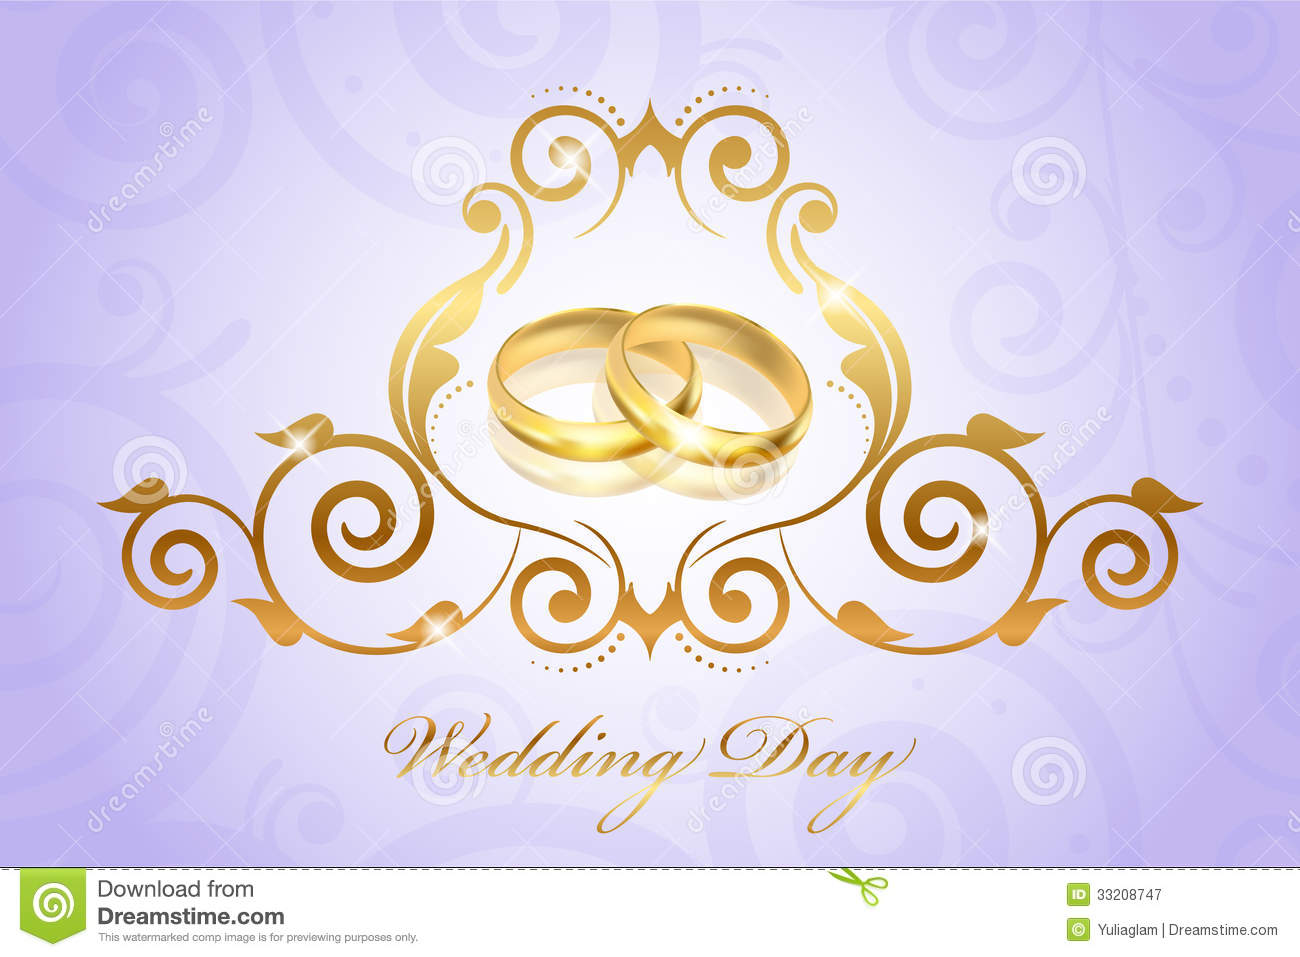 Image Result For Wedding Rings Vector Free Download